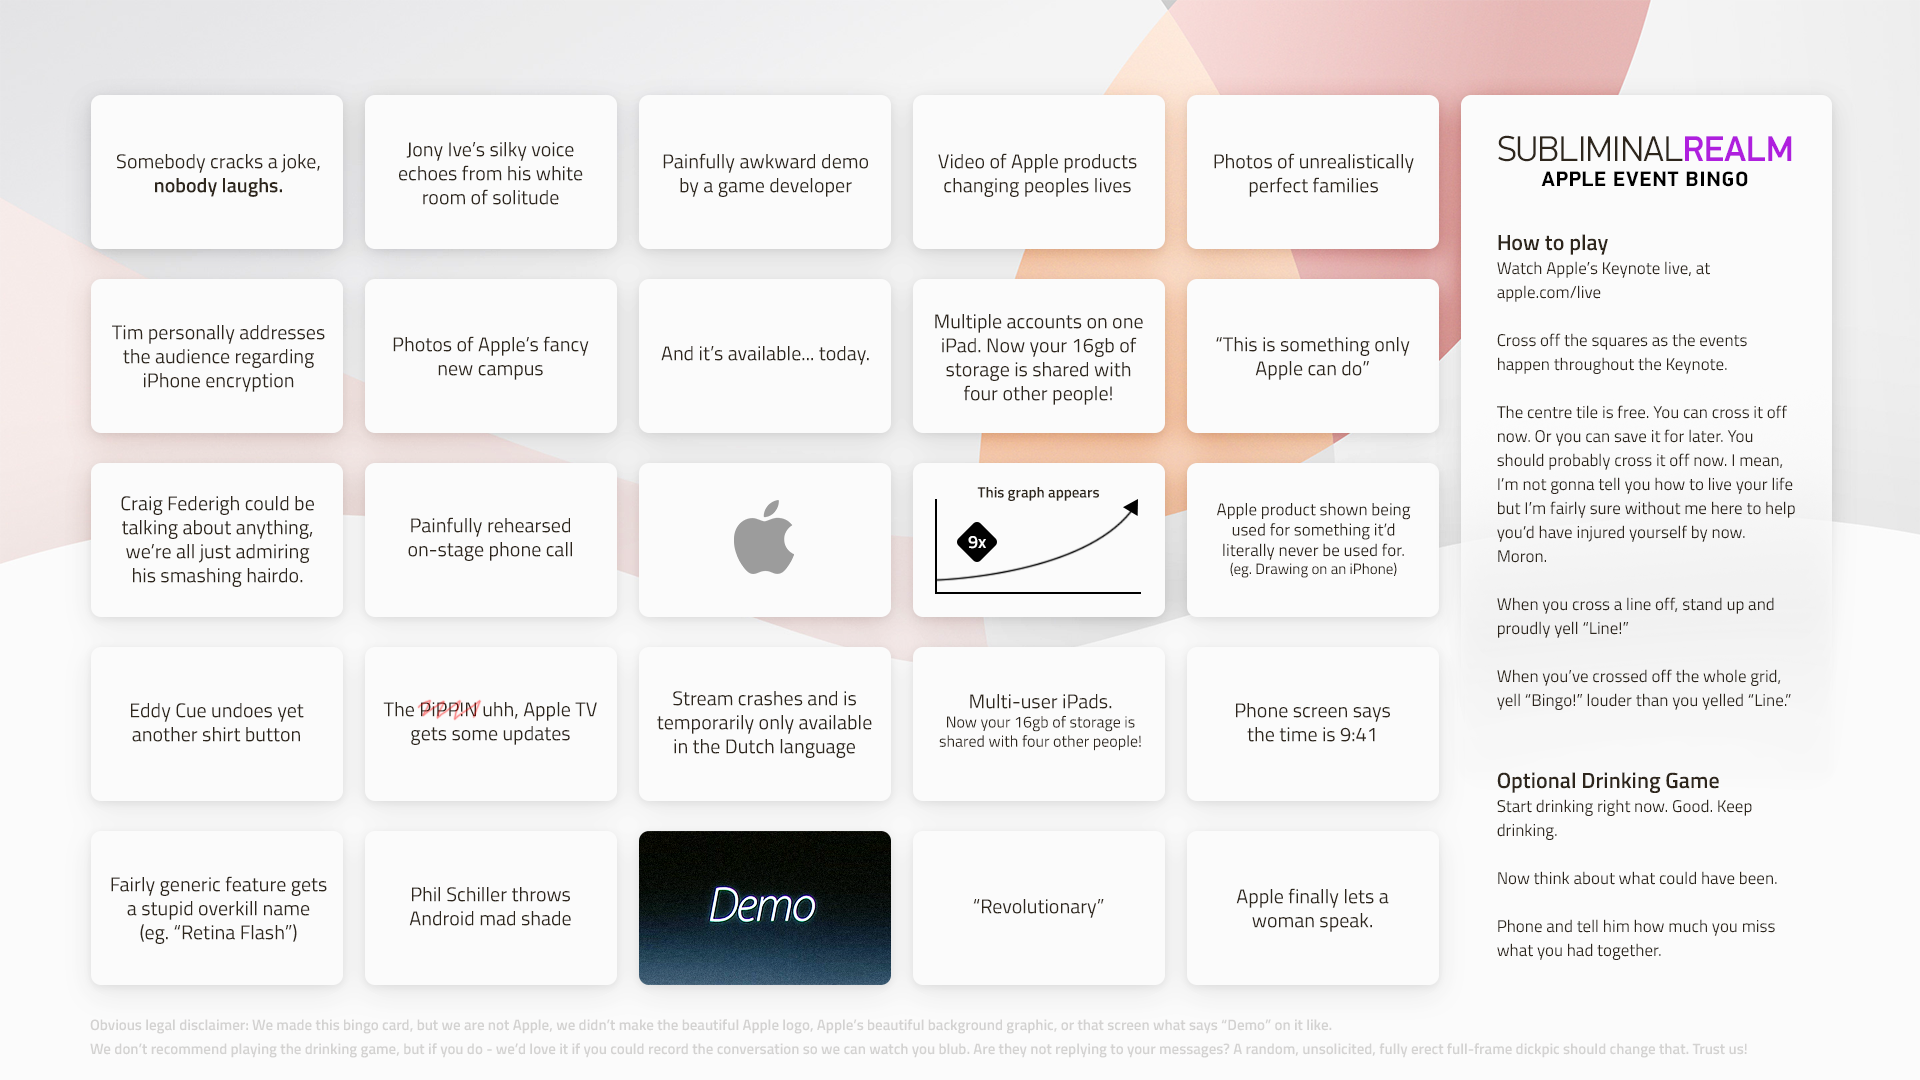 SubliminalRealm's Apple Event Bingo Card for the Apple Live Event, March 21, 2016. Click to enlarge.